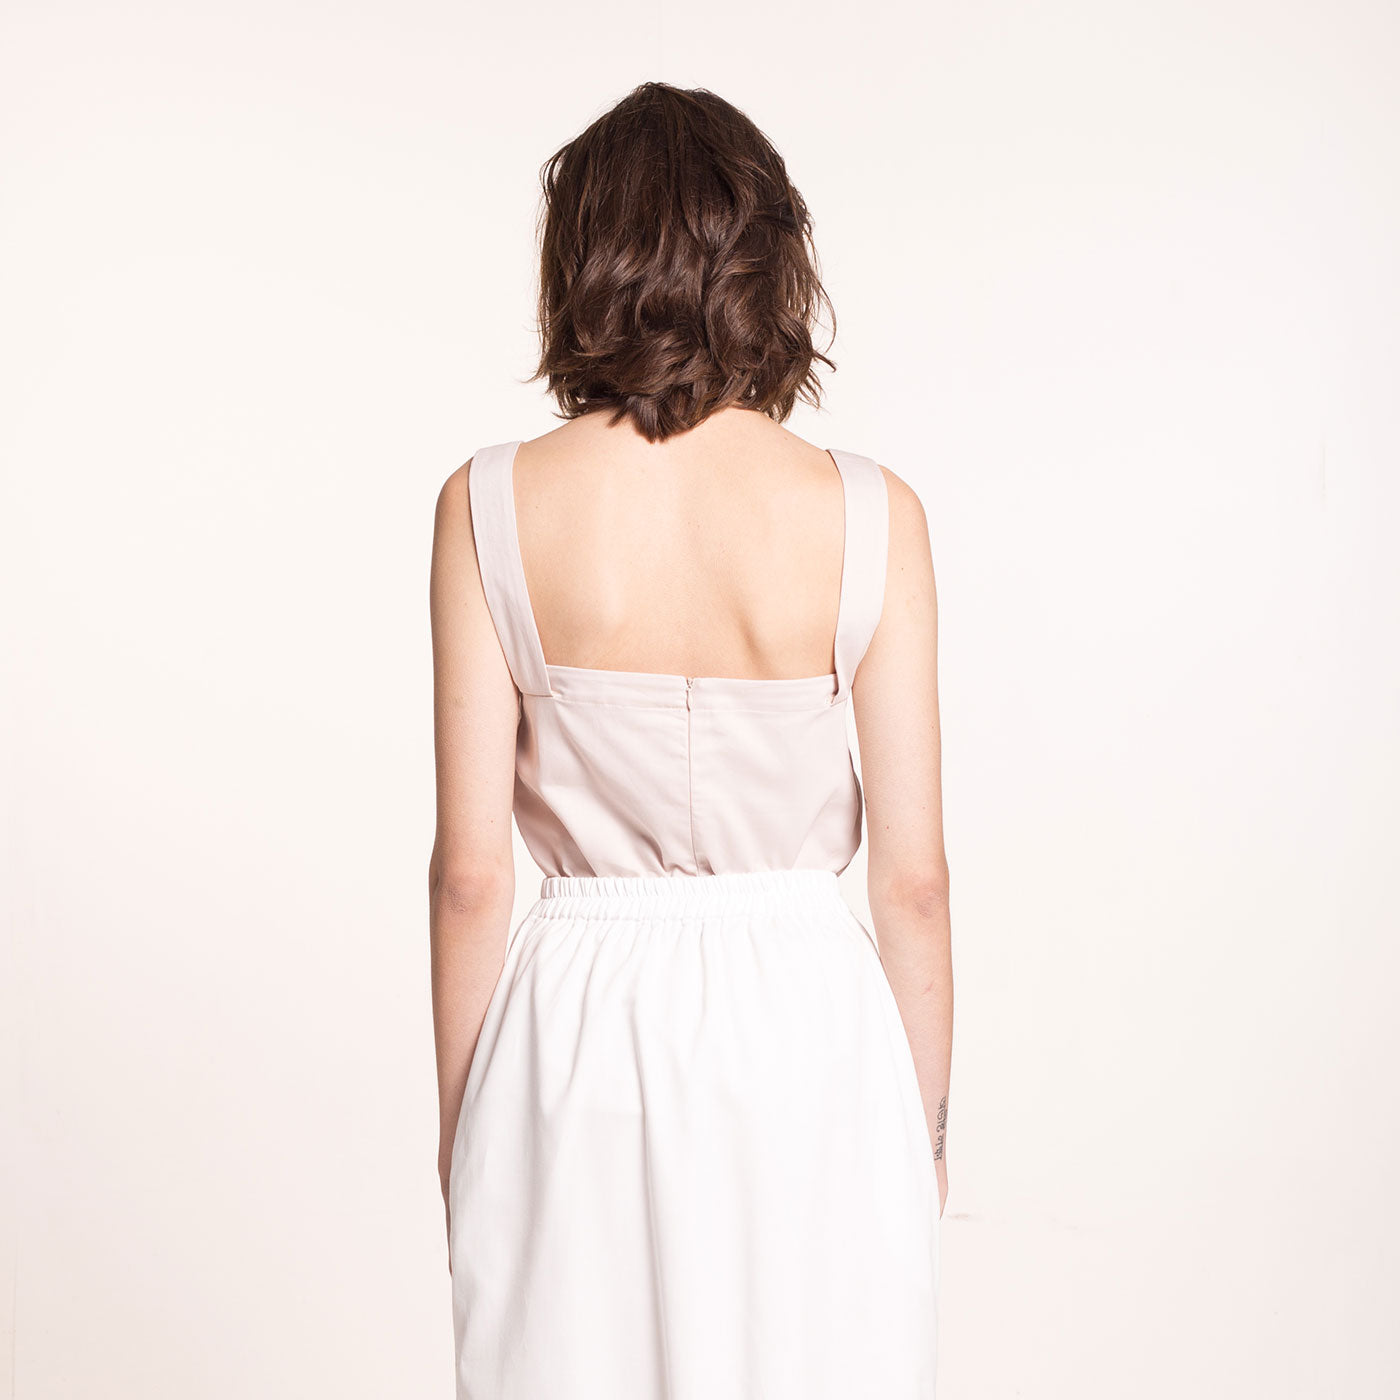 The model wears a rose-beige, sustainable, organic cotton, wide straps top, back view.